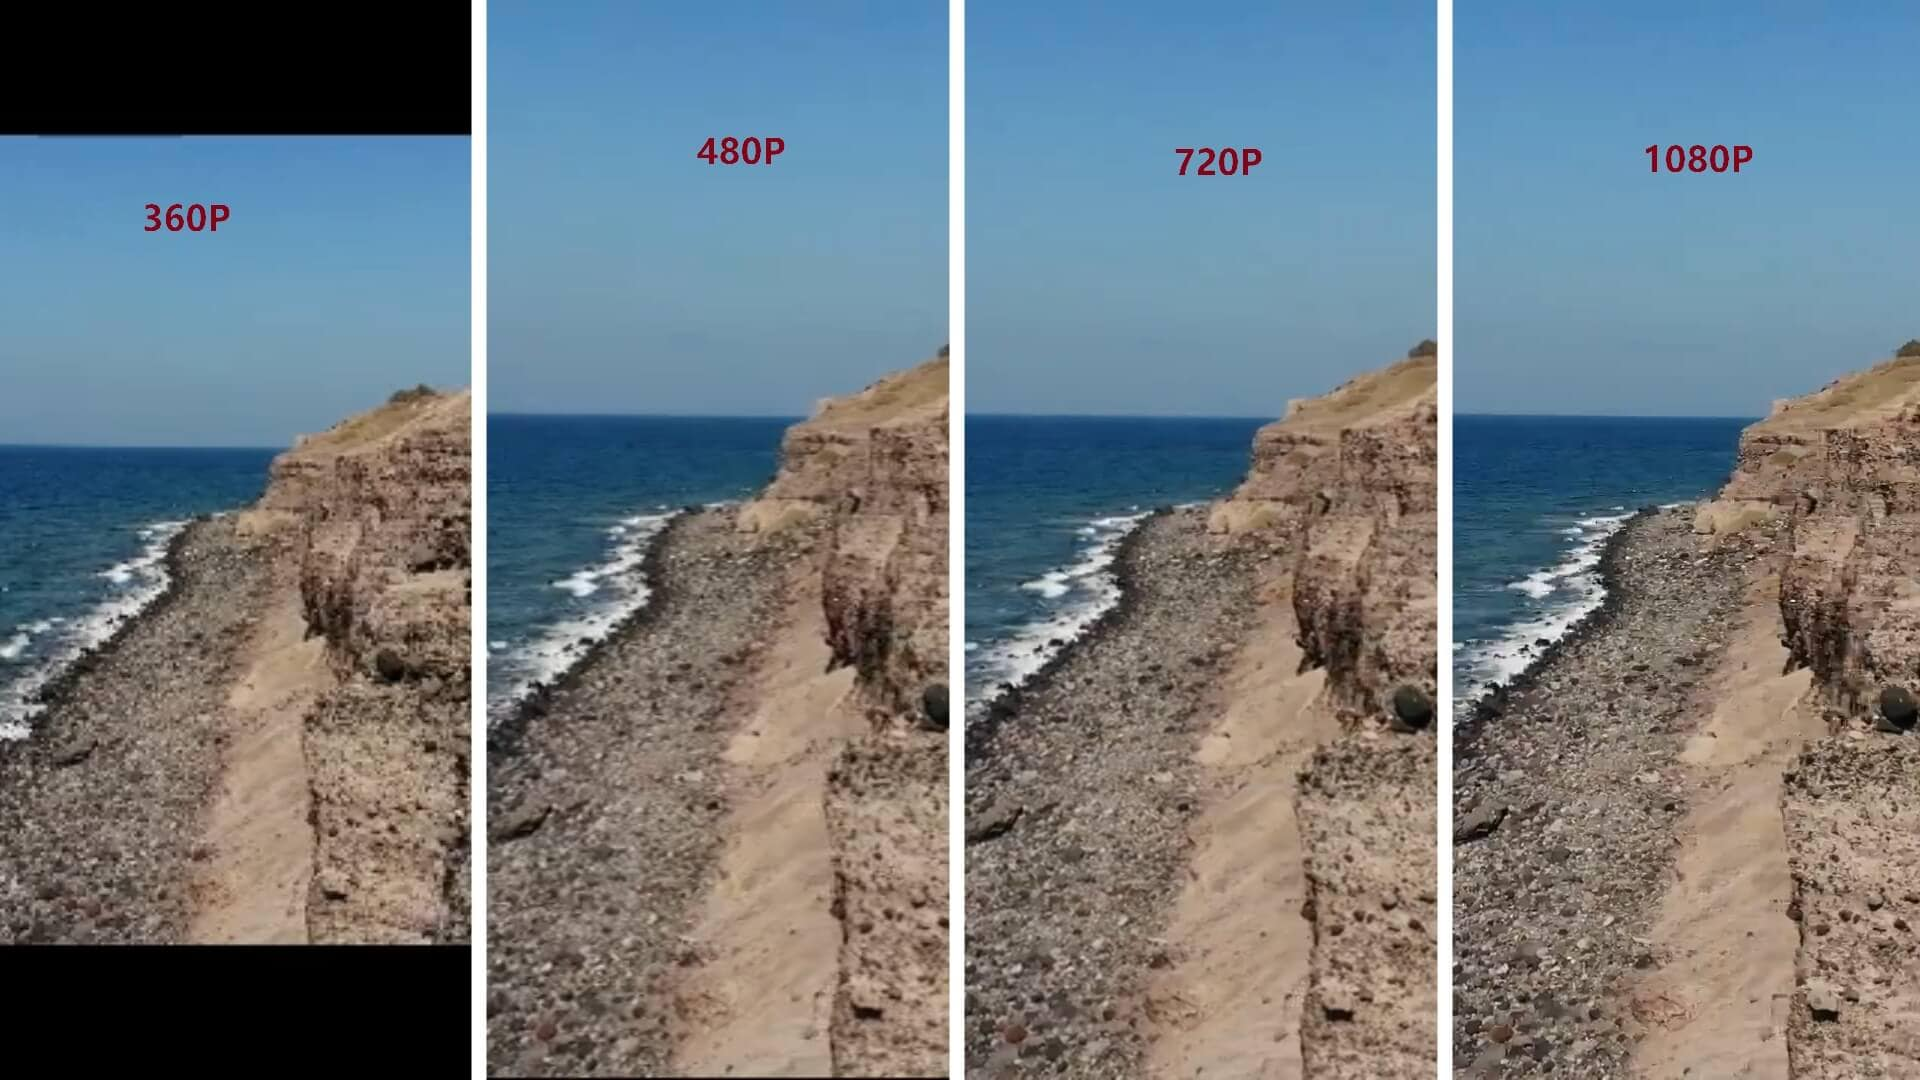 Diferentes ejemplos de resoluciones de video